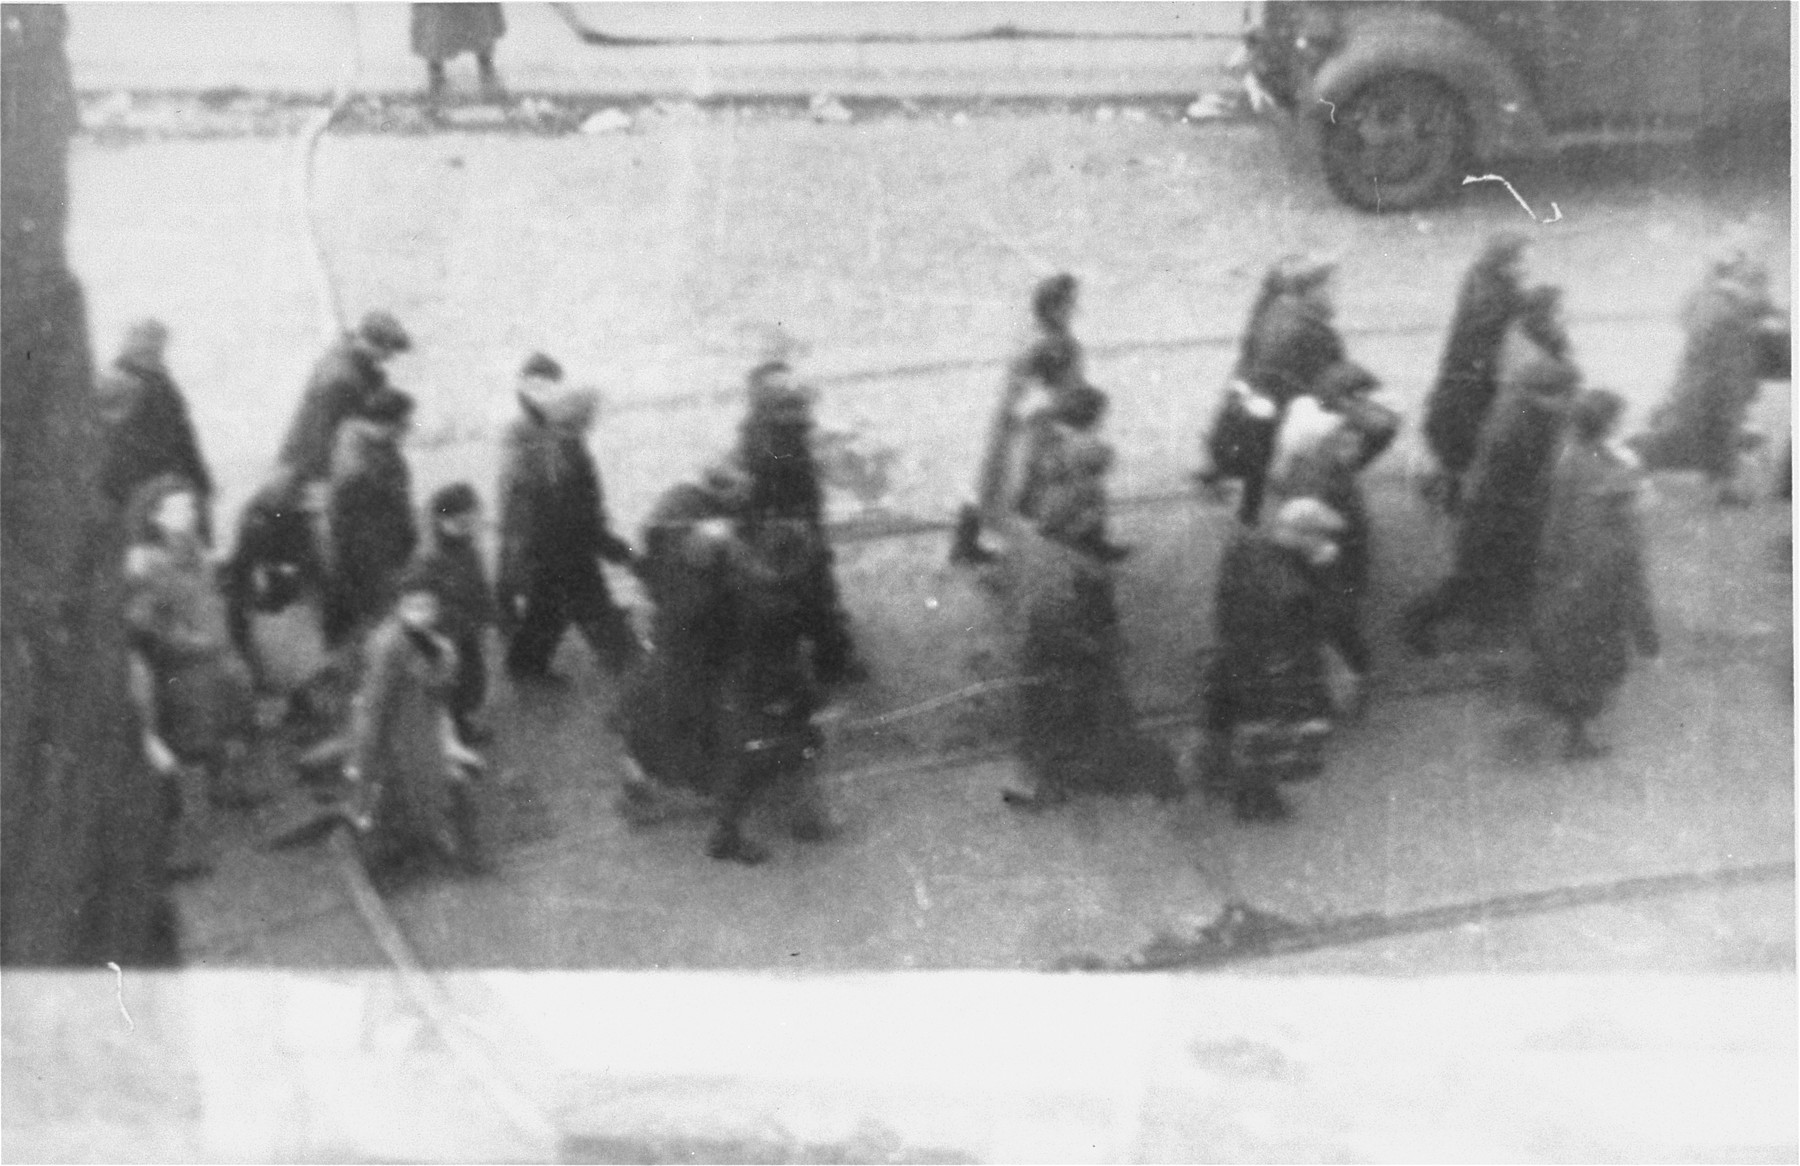 Jews captured by the SS during the suppression of the Warsaw ghetto uprising march past the St. Zofia hospital down Nowolipie Street towards the Umschlagplatz for deportation.